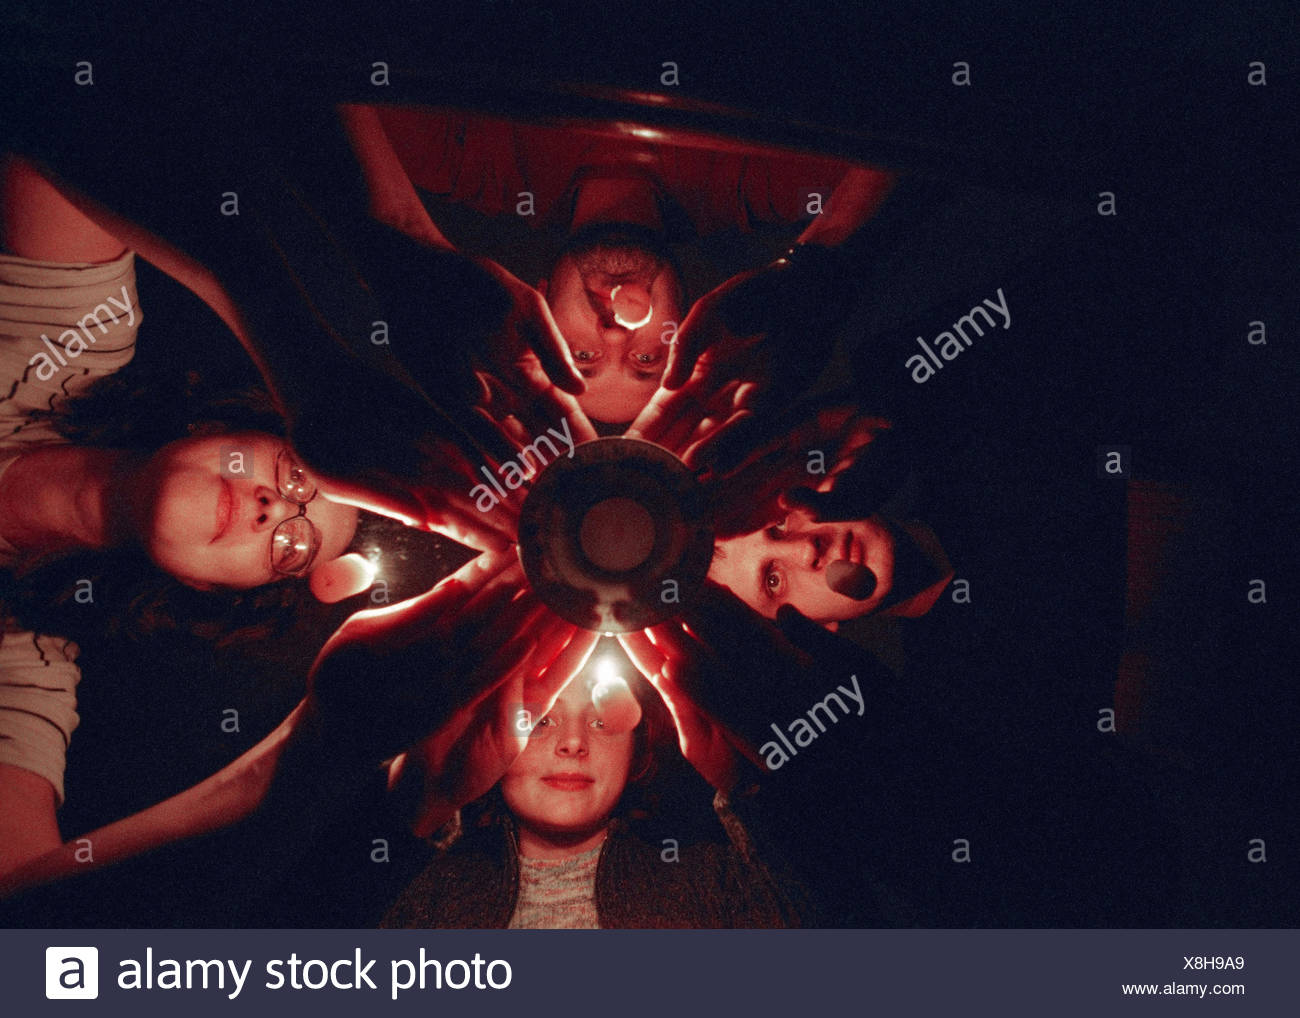 Necromancy, young persons, table, plate, hands, touch, from below spiritualism, occultism, ritual, mind questioning, oracle, mystically, parapsychology, small table back, glass back, 'plate back', session, concentration, strain, expectation, mysticism, my - Stock Image